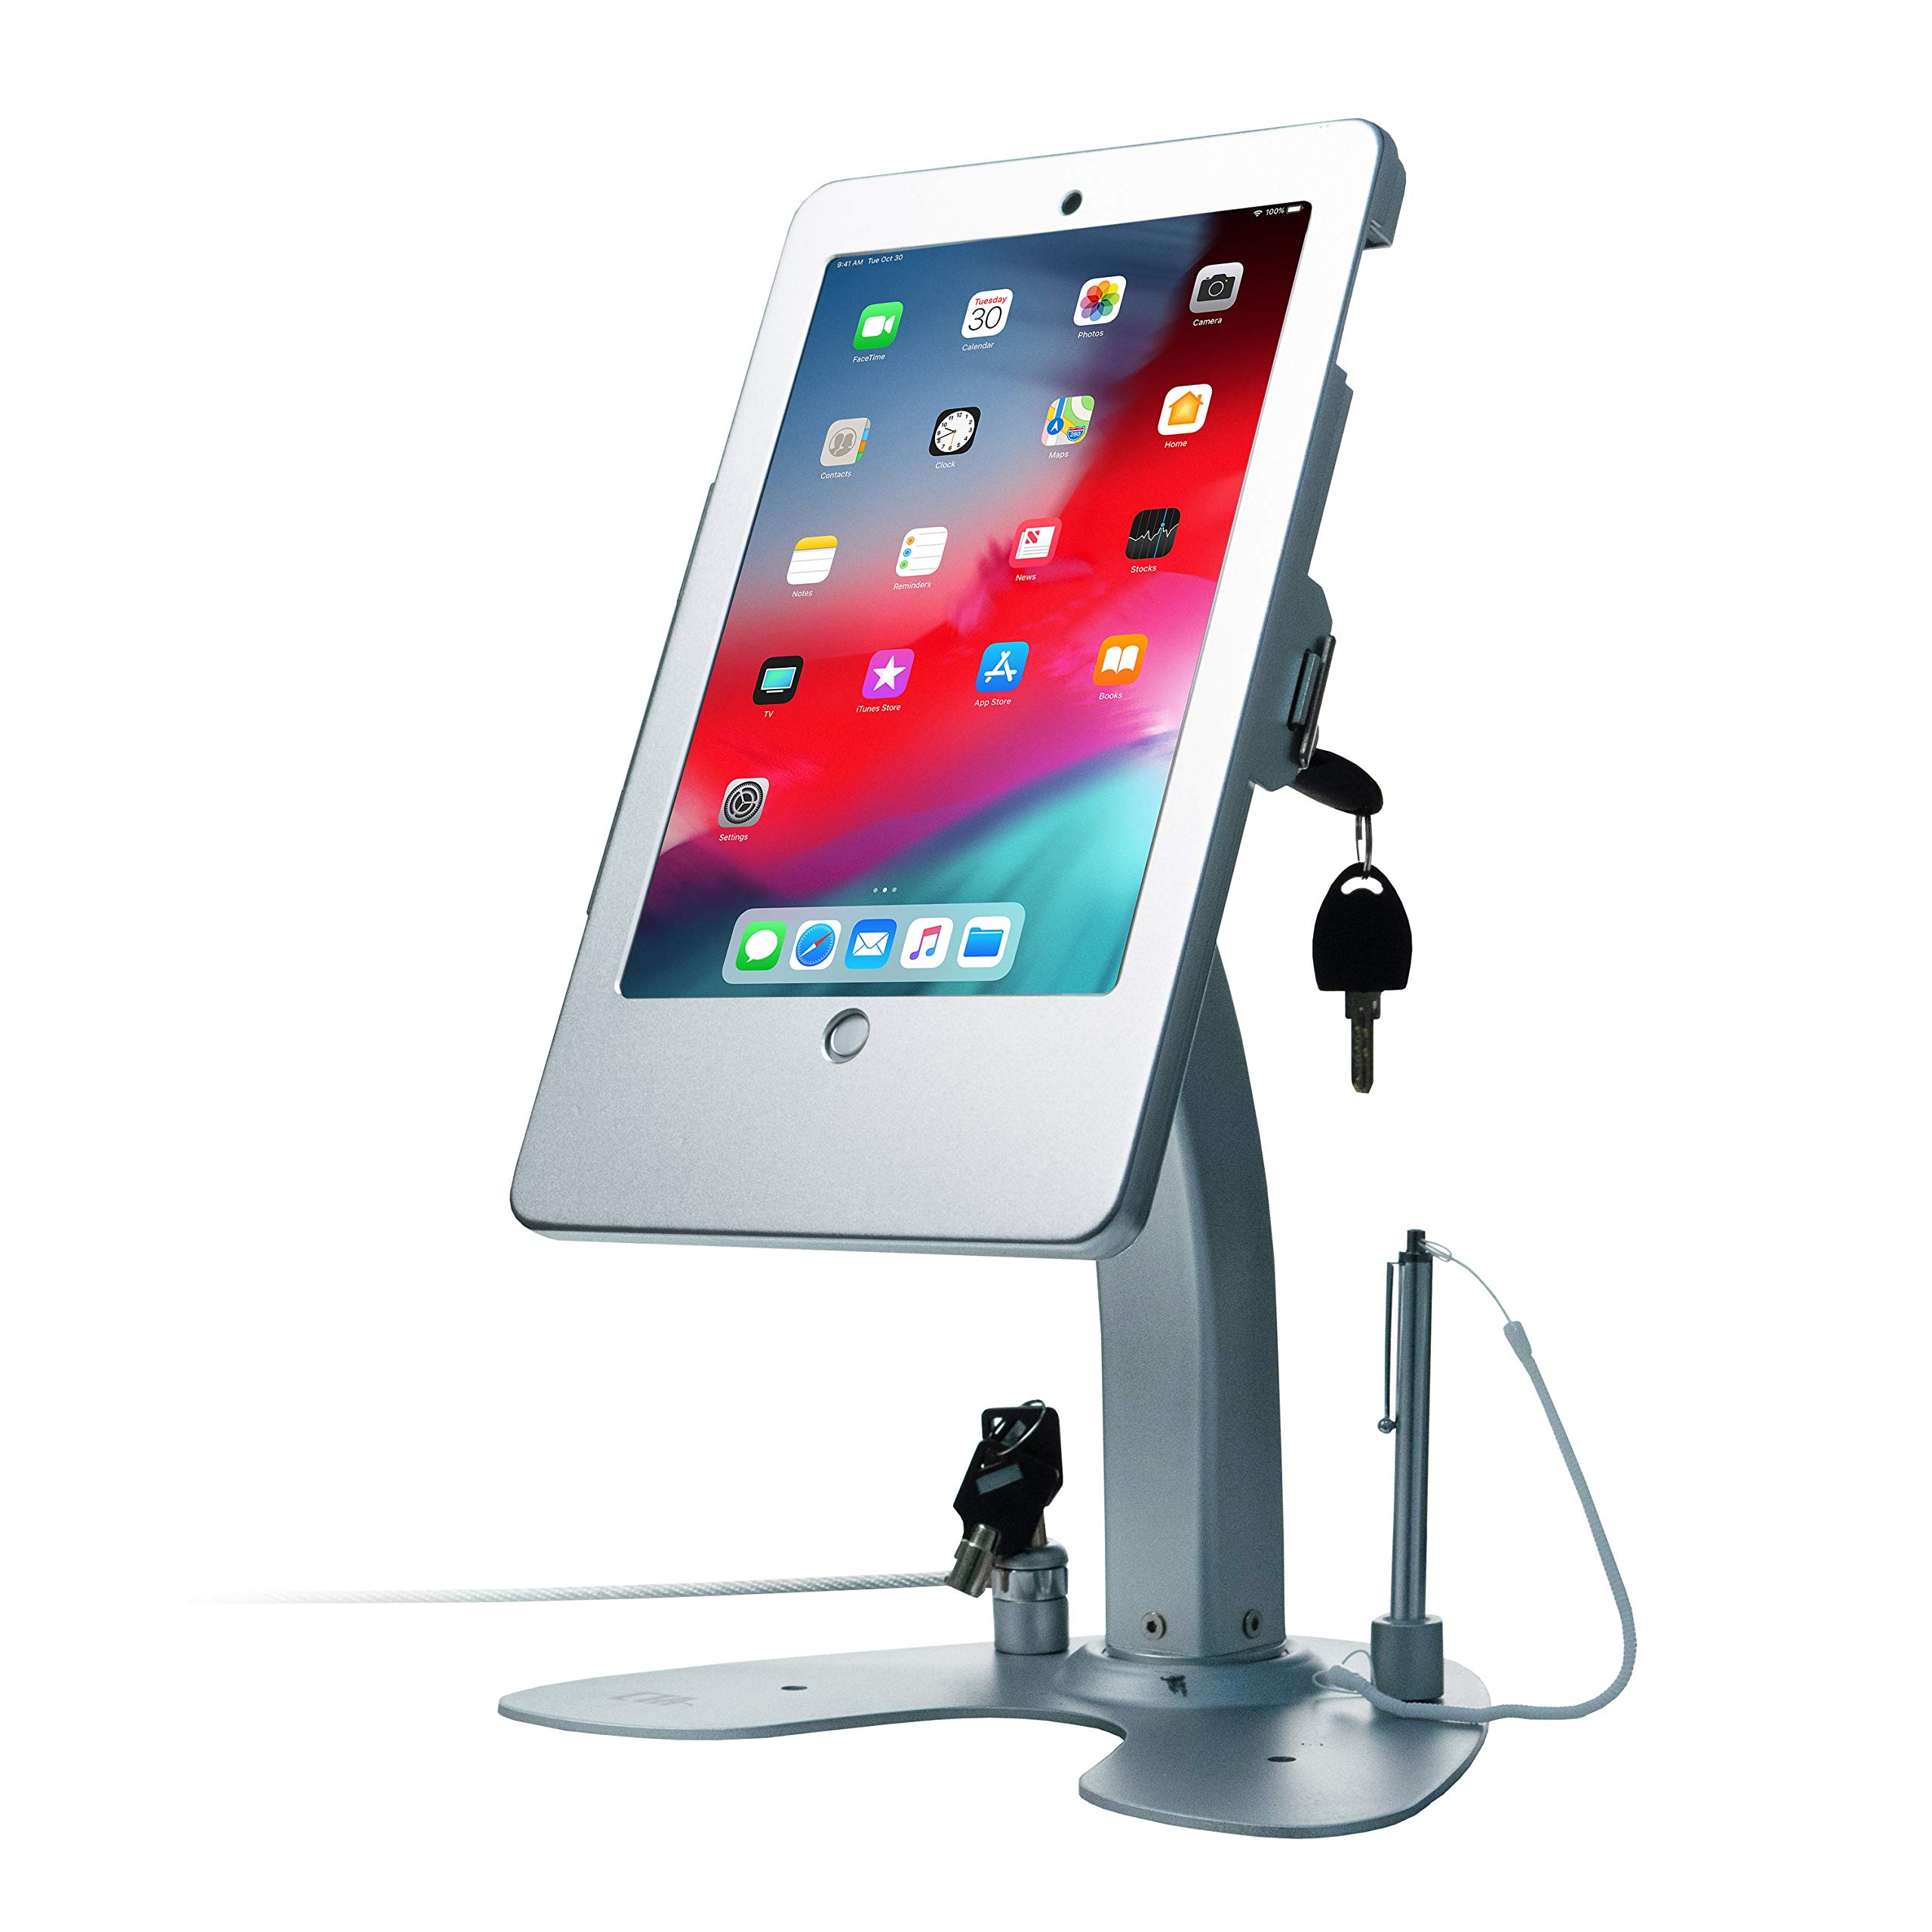 CTA Digital PAD-ASK  Dual Security Kiosk Stand with Locking Case and Cable for iPad Gen. 5 (2017), iPad Gen. 6 (2018), iPad Air, and iPad Pro 9.7 by CTA Digital